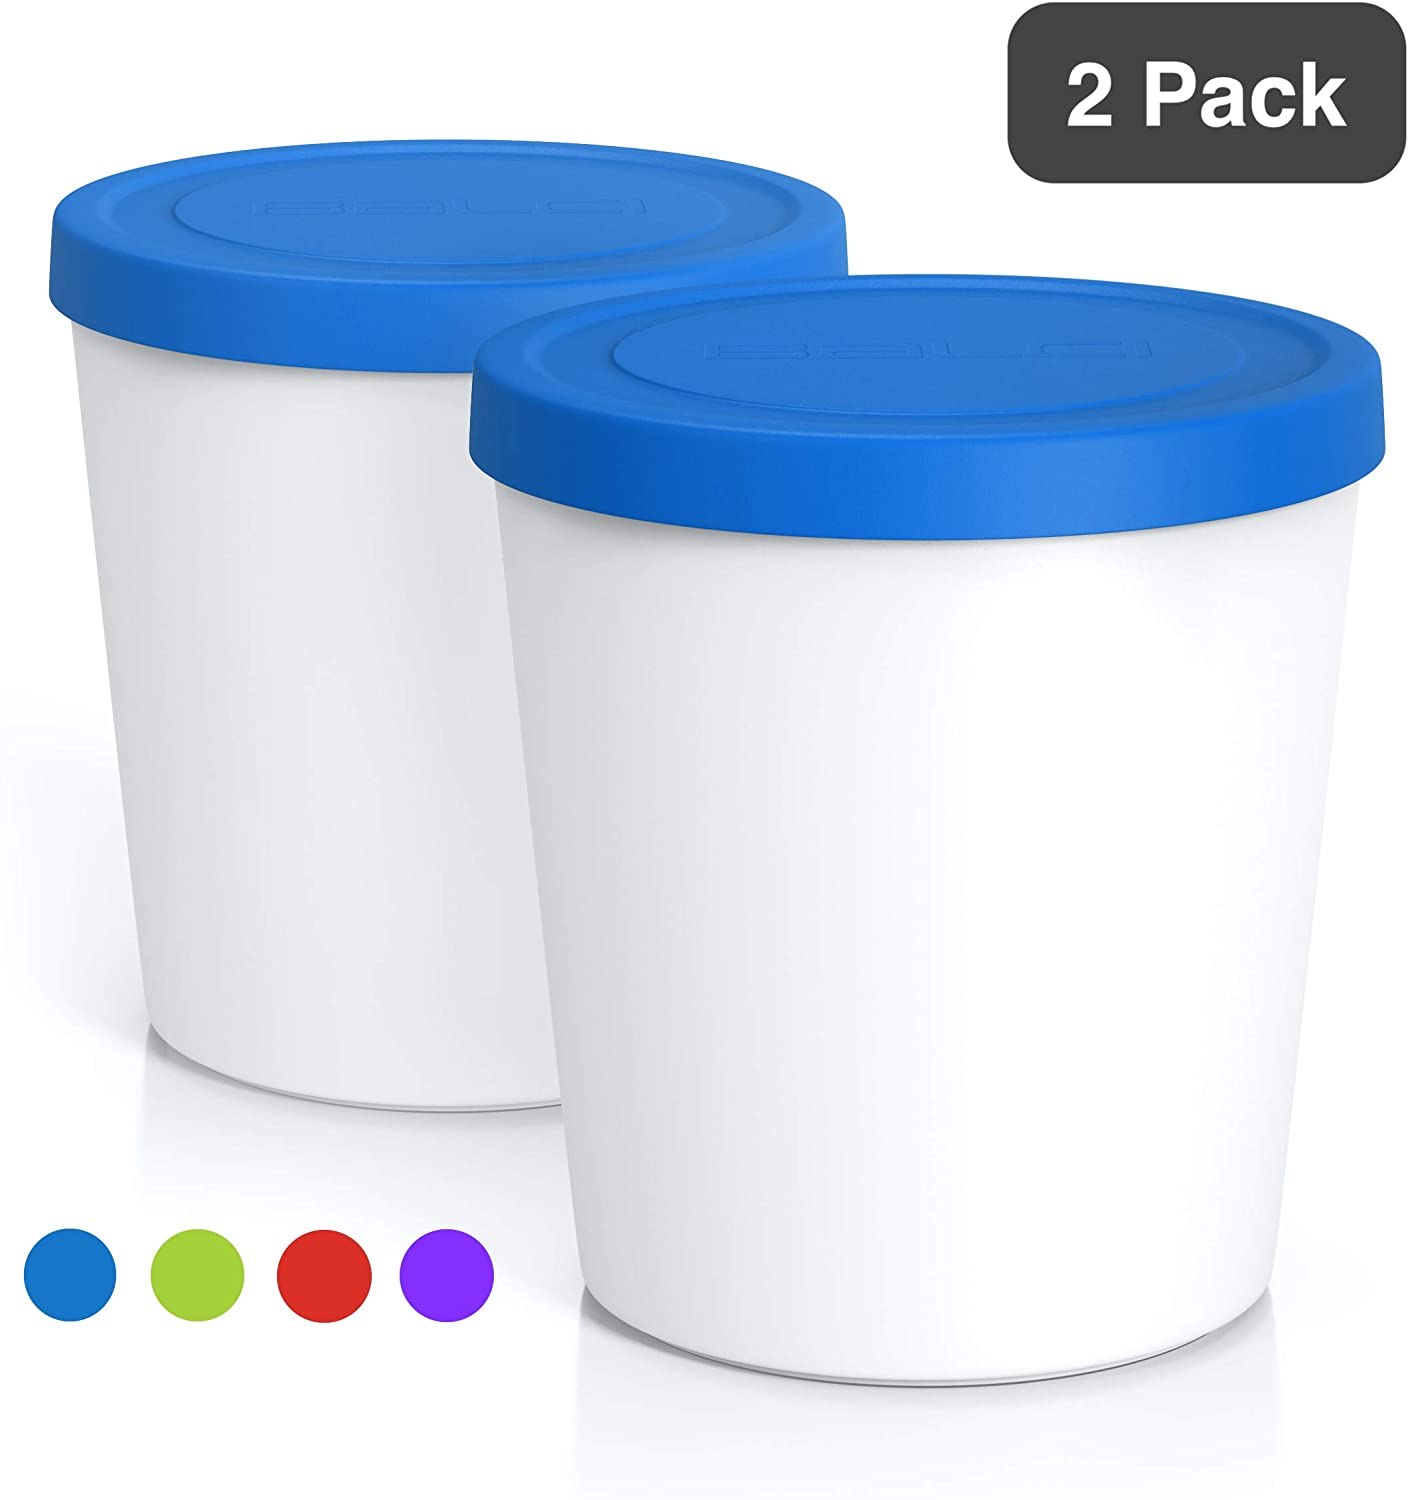 BALCI Freezer Storage Tub & Ice Cream Container, 2-Pack